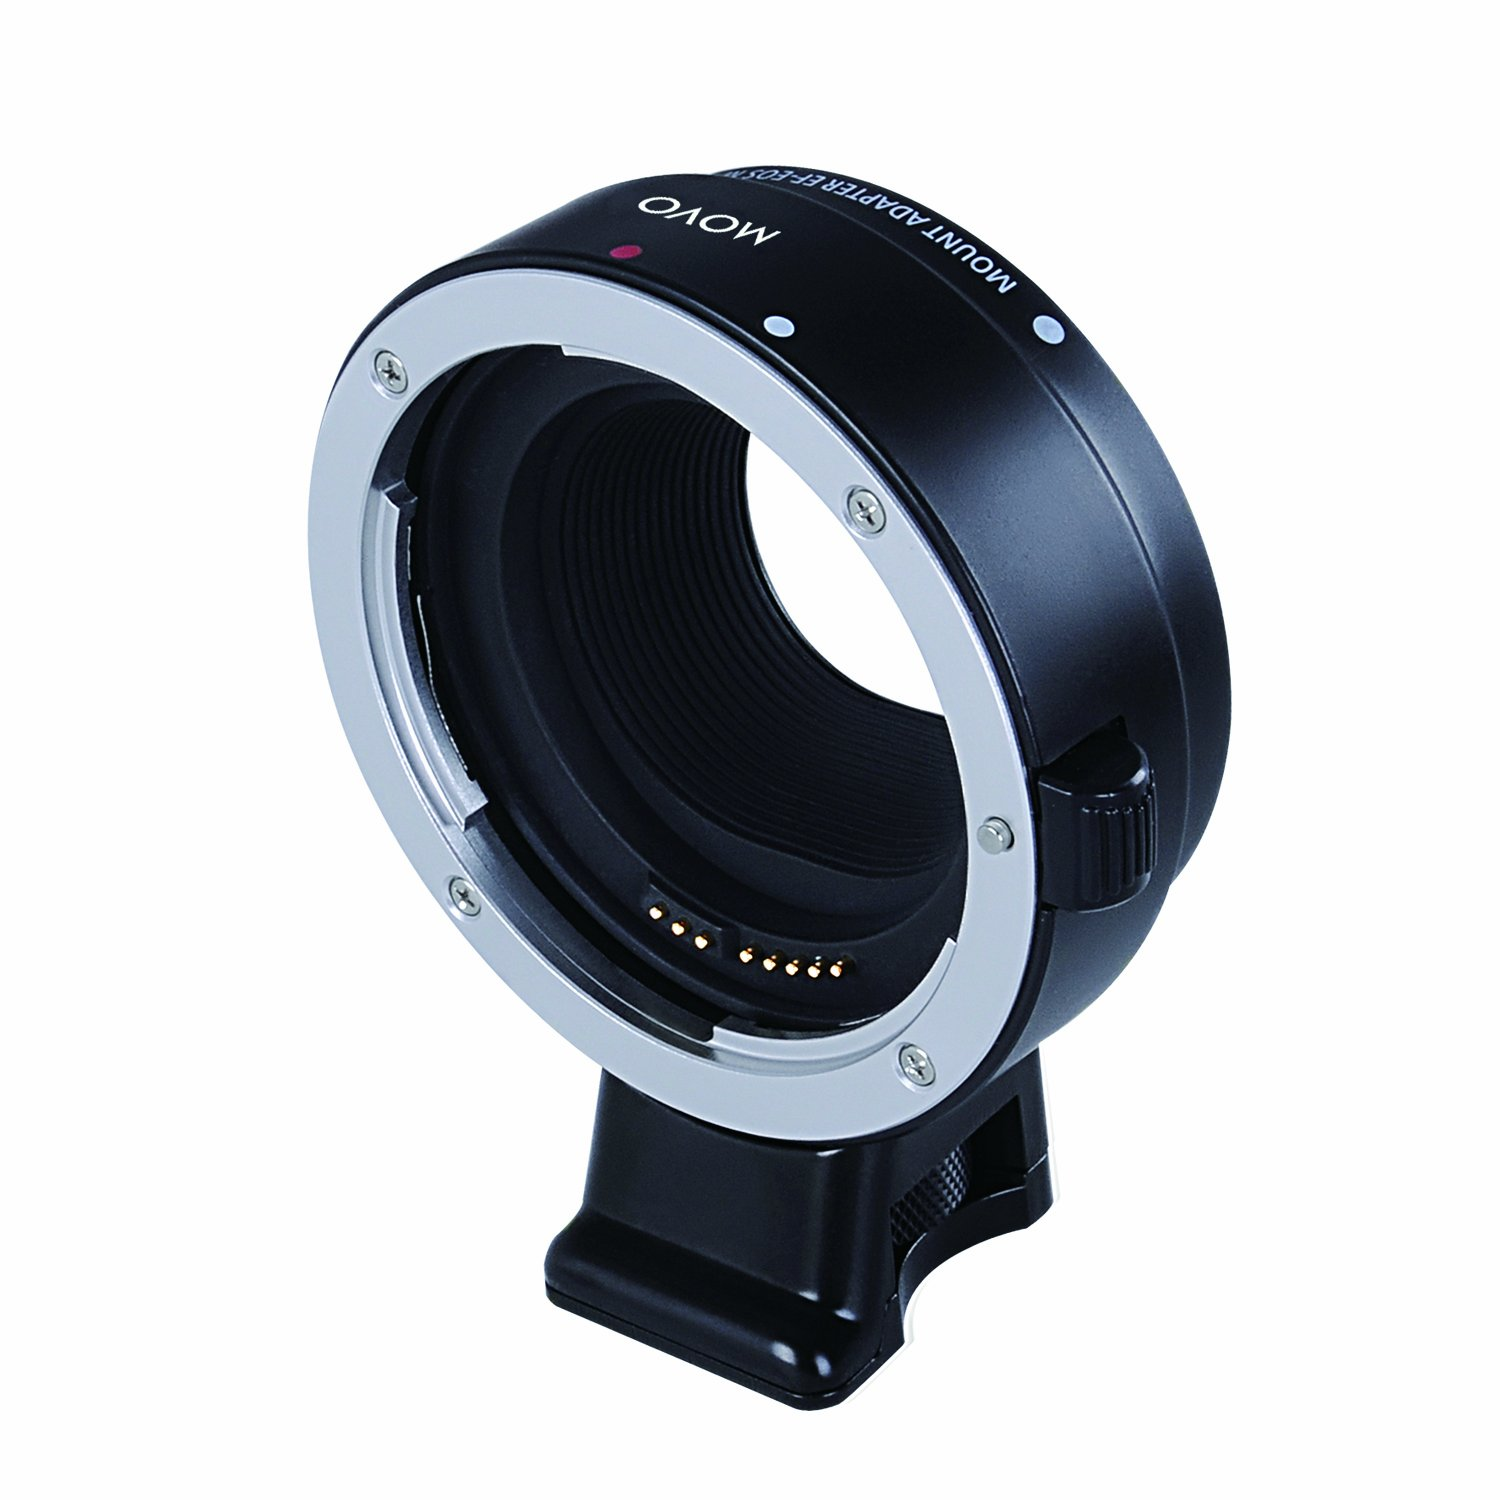 Movo Photo CTA-C Lens Adapter for Canon EF-M Mirrorless Cameras to fit Canon EOS EF/EF-S Lenses